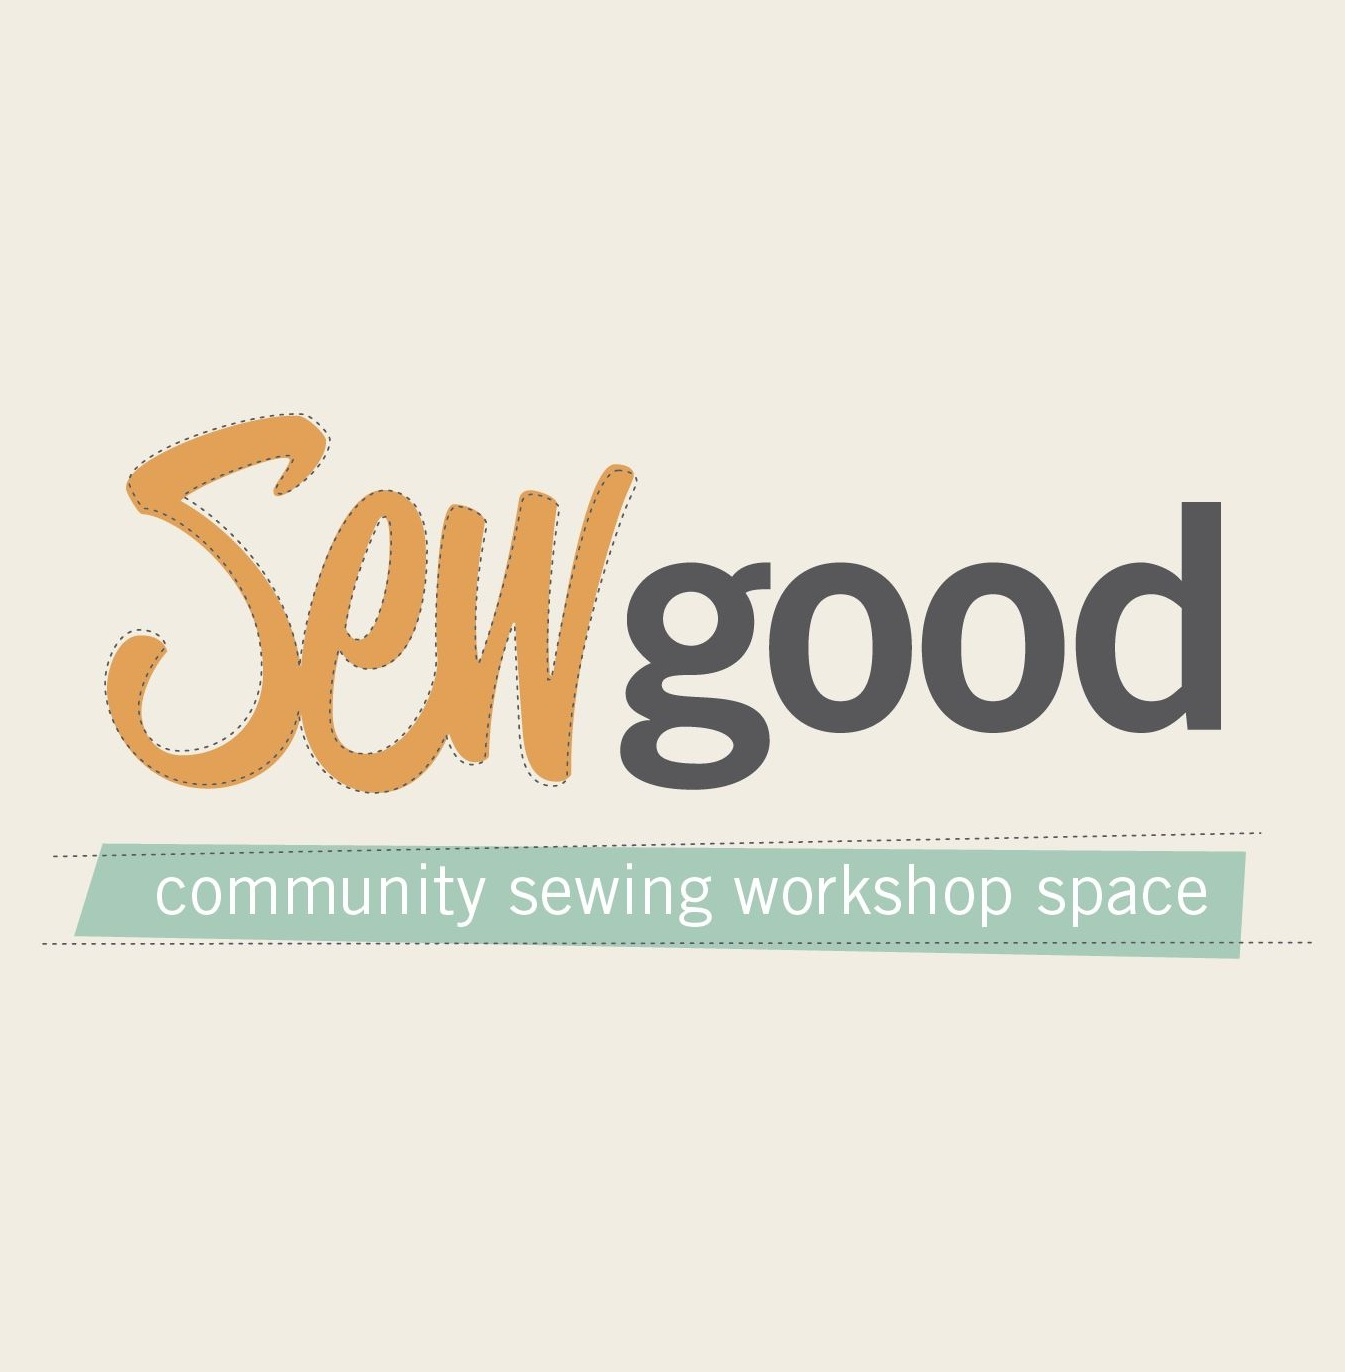 sew good square.jpg